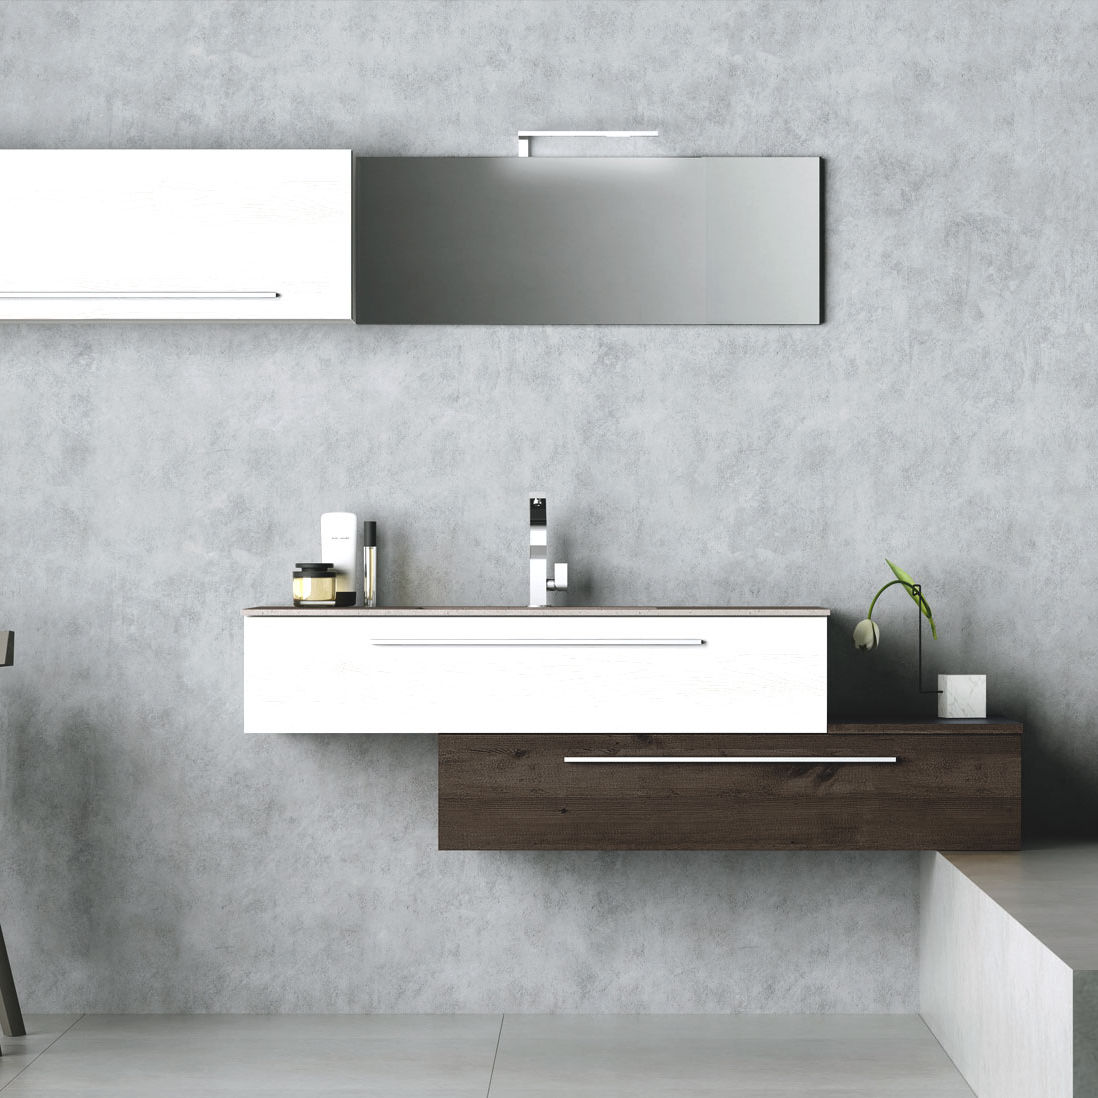 Wall hung washbasin cabinet laminate contemporary with wall hung washbasin cabinet laminate contemporary with illuminated mirror composition po2 dailygadgetfo Choice Image